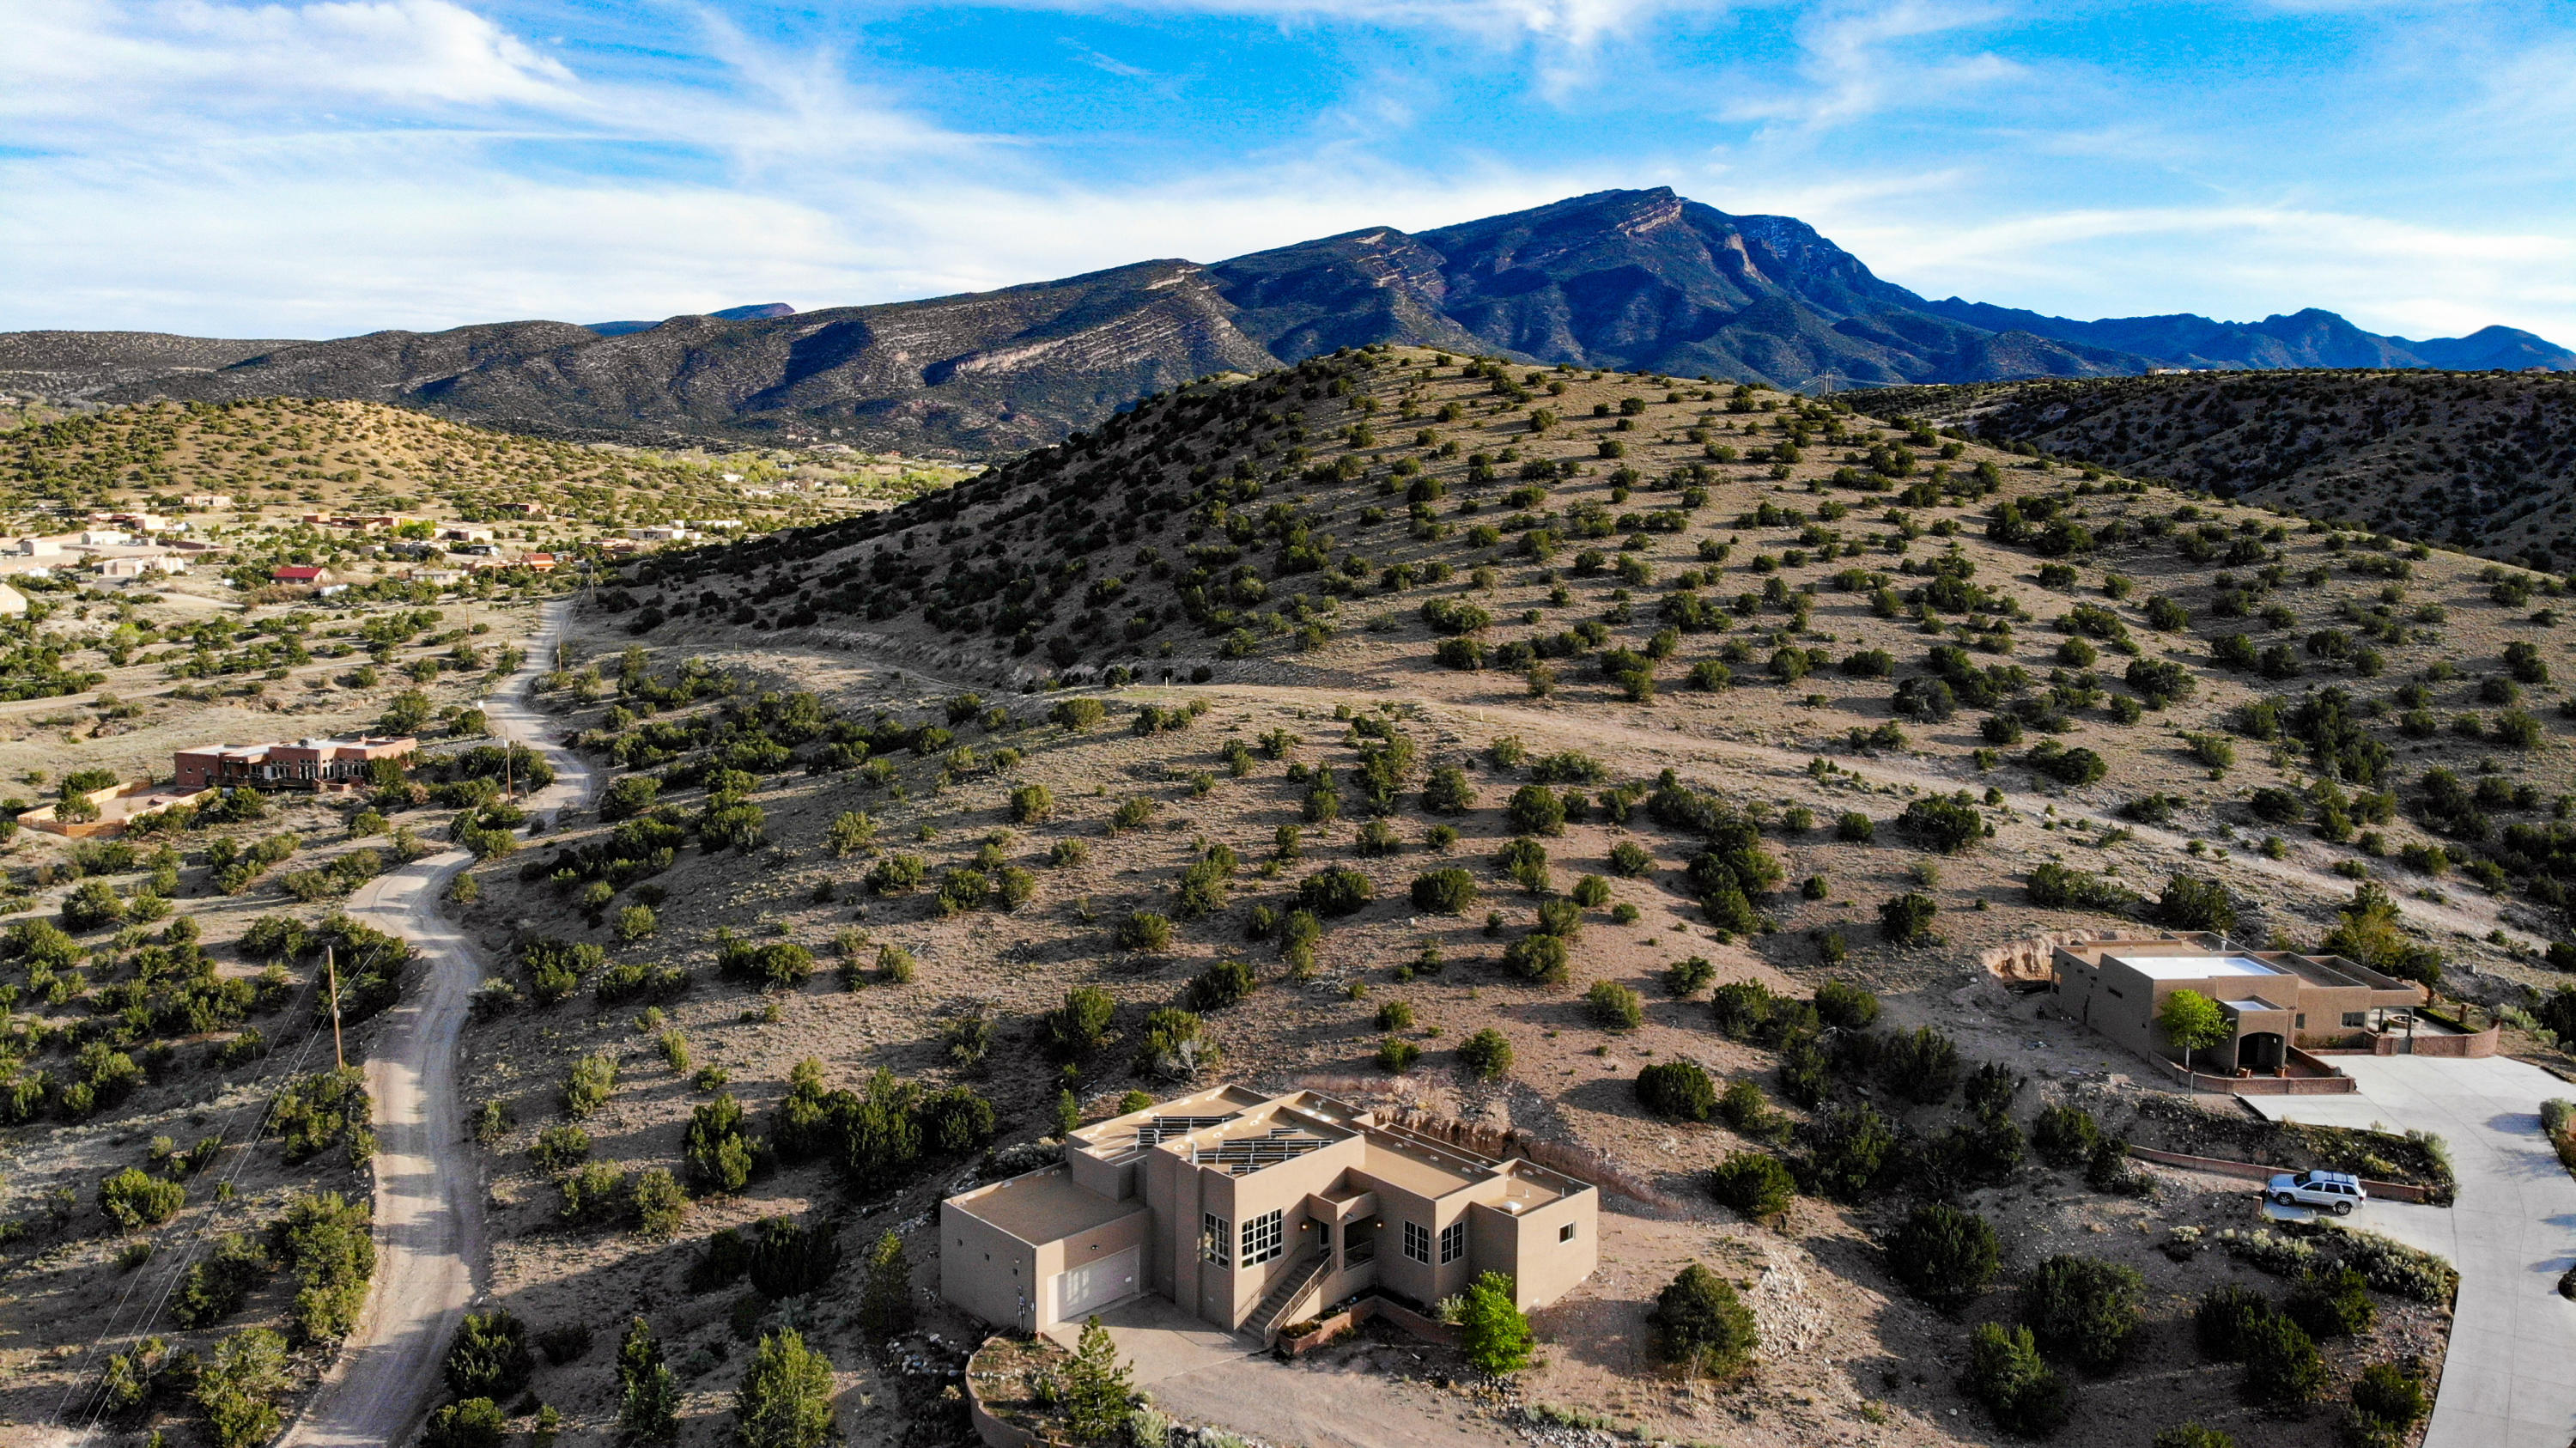 Beautiful custom home on 2.35 acres w/ expansive views of the Jemez mountains, western mesas & Cabezon Peak. The many windows & skylights fill the home w/ natural light & the raised beamed ceiling creates an inviting, open feeling. Custom features include lighted nichos, custom gas fireplace & the living area is wired for surround sound. The kitchen features solid surface counters, solid hickory cabinets, glass tile backsplash, island w/ eating area, stainless steel appliances (Asko, Dacor, Electrolux), reverse osmosis filtration system & opens to the large covered patio. The large separate master features an en suite bath w/ jetted tub, dual shower, double vanity & large walk in closet. The home also features aux 3kV solar power, refrigerated air/combo unit & large garage w/ storage.